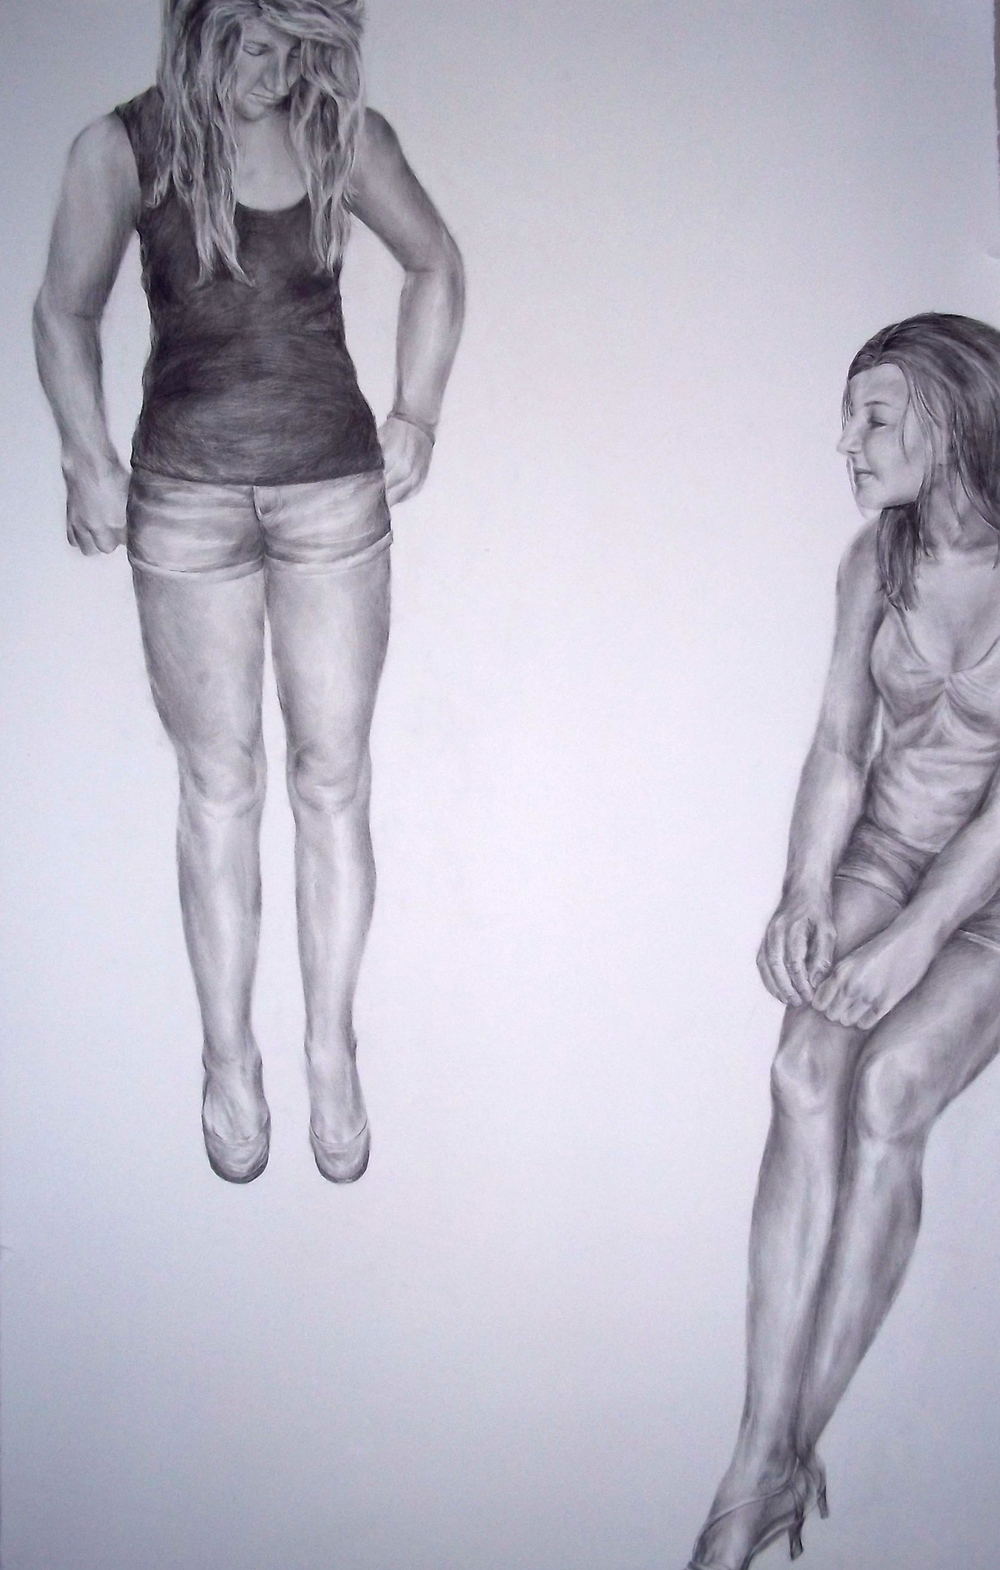 Stare,   Pencil on Paper, 2011, 3 x 5 ft.